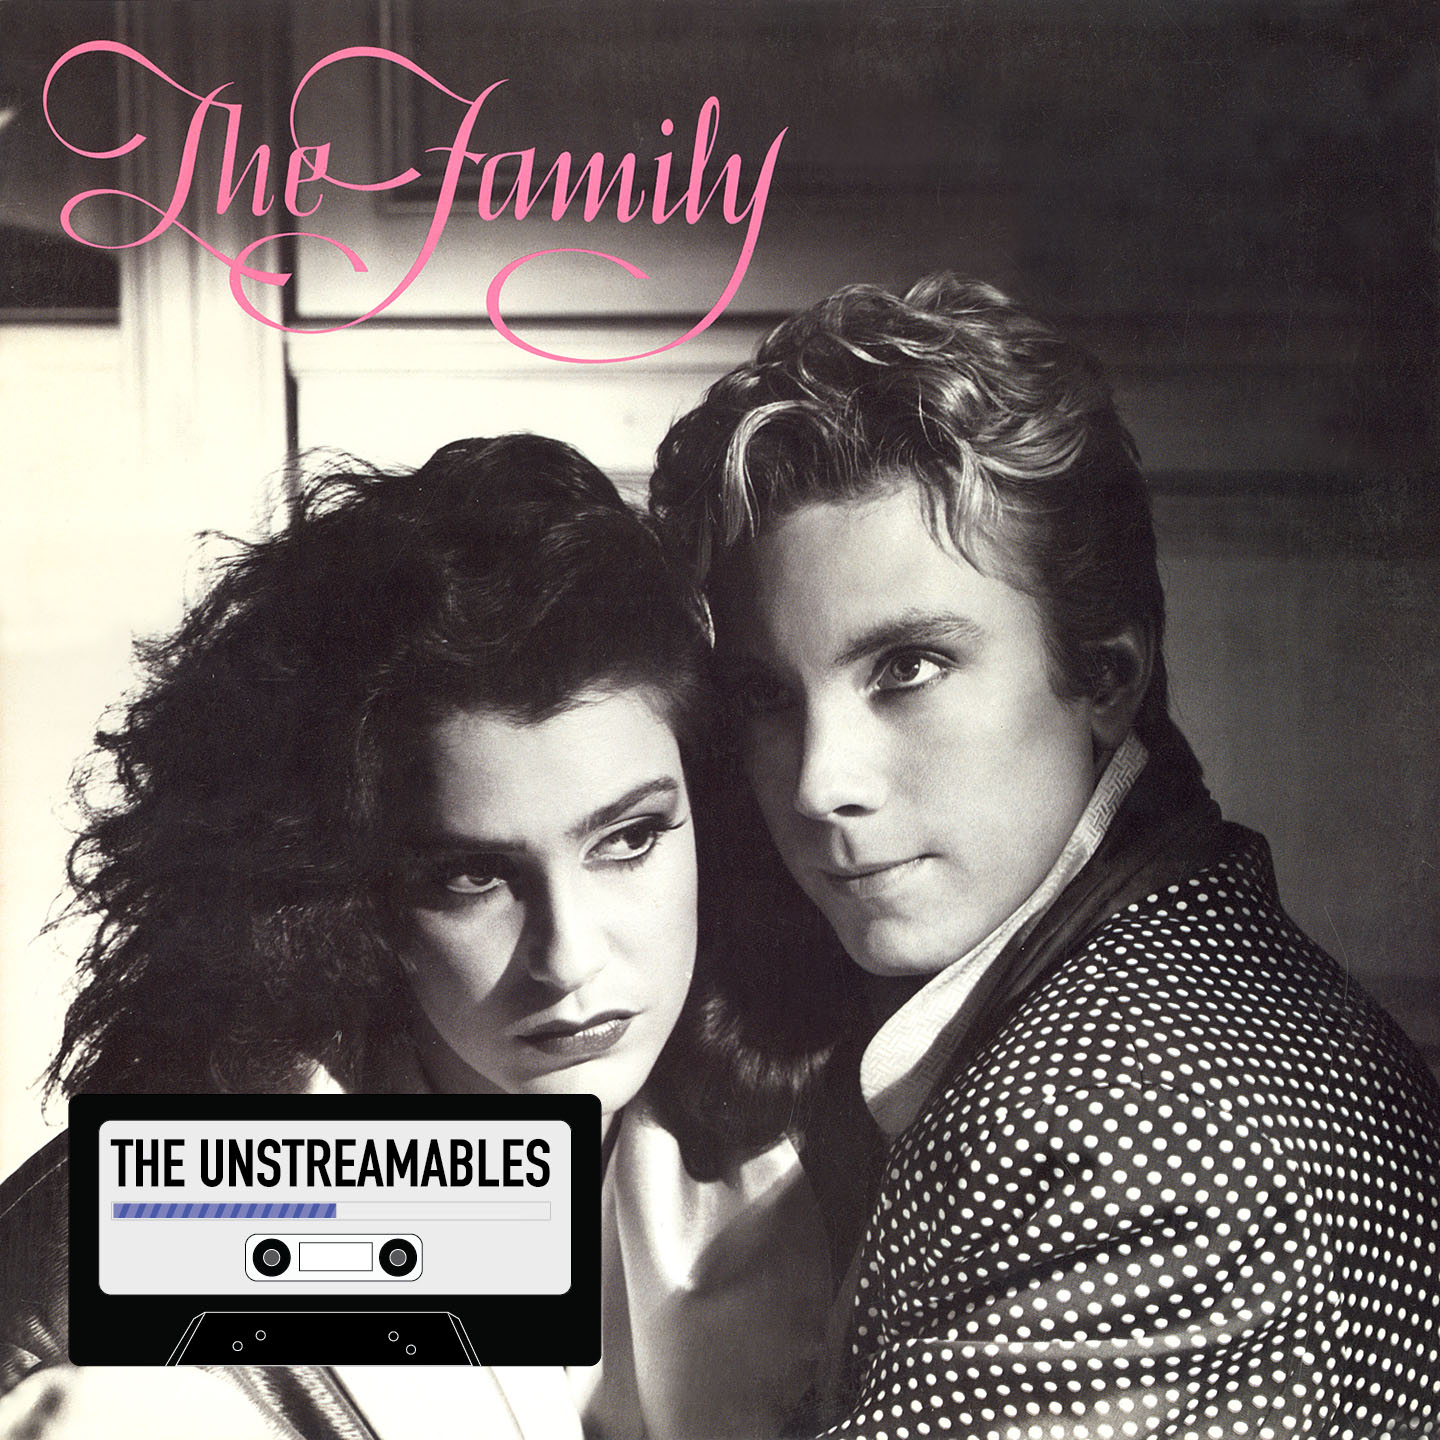 The Unstreamables The Familys Page in the Prince Songbook Noisey